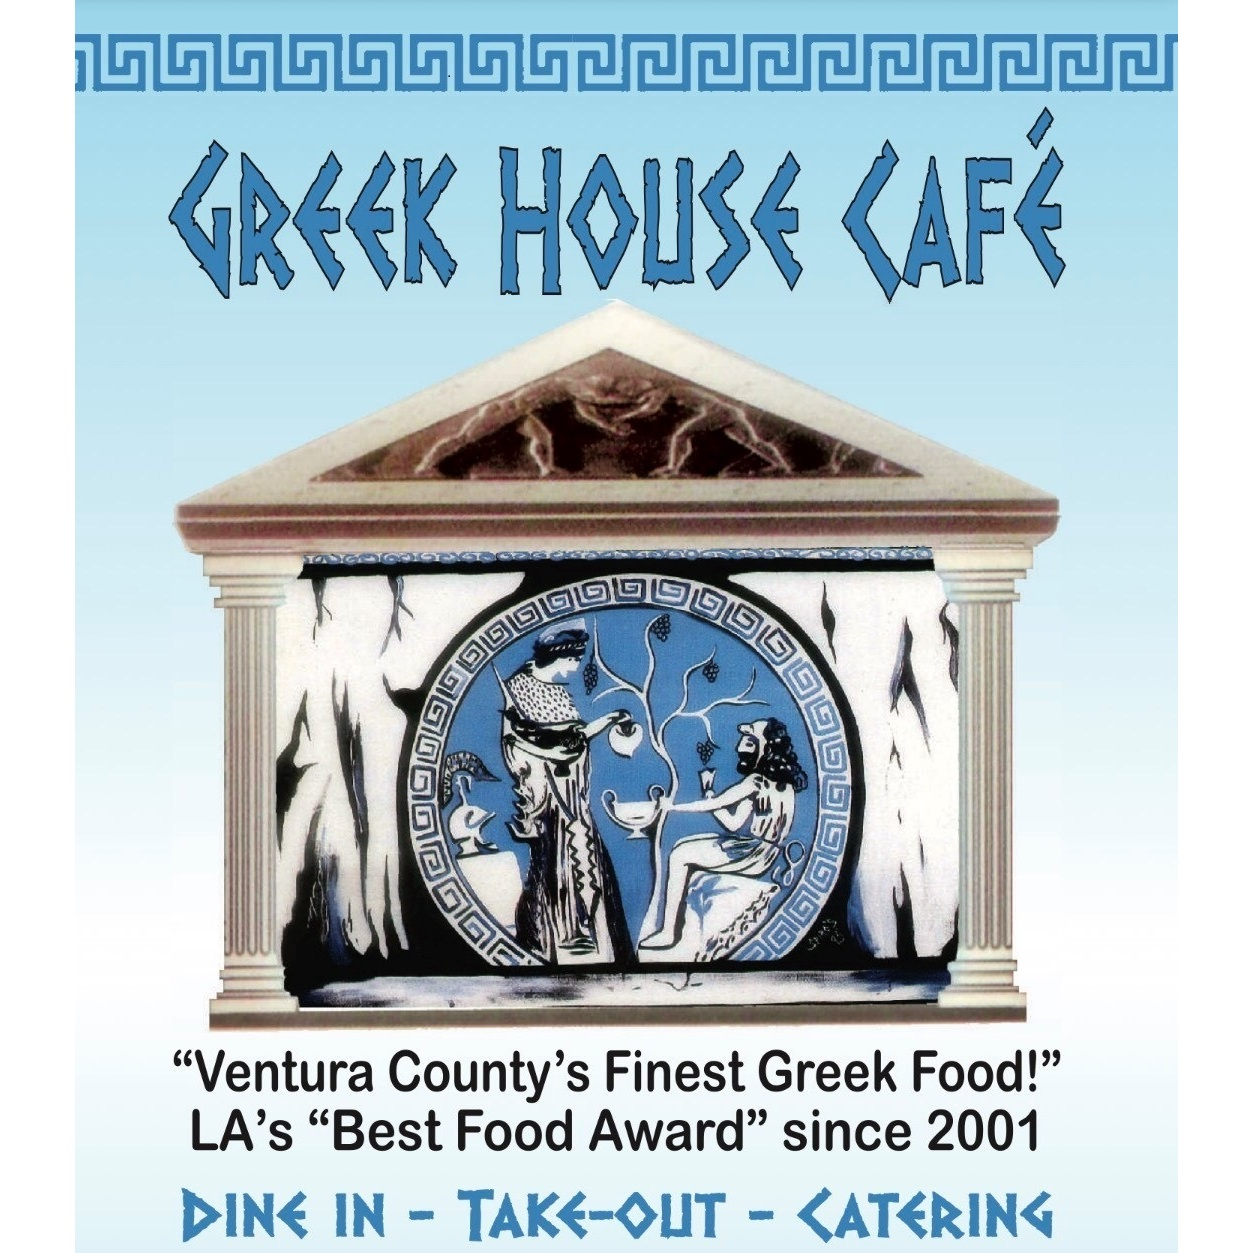 Greek House Cafe Simi Valley Ca